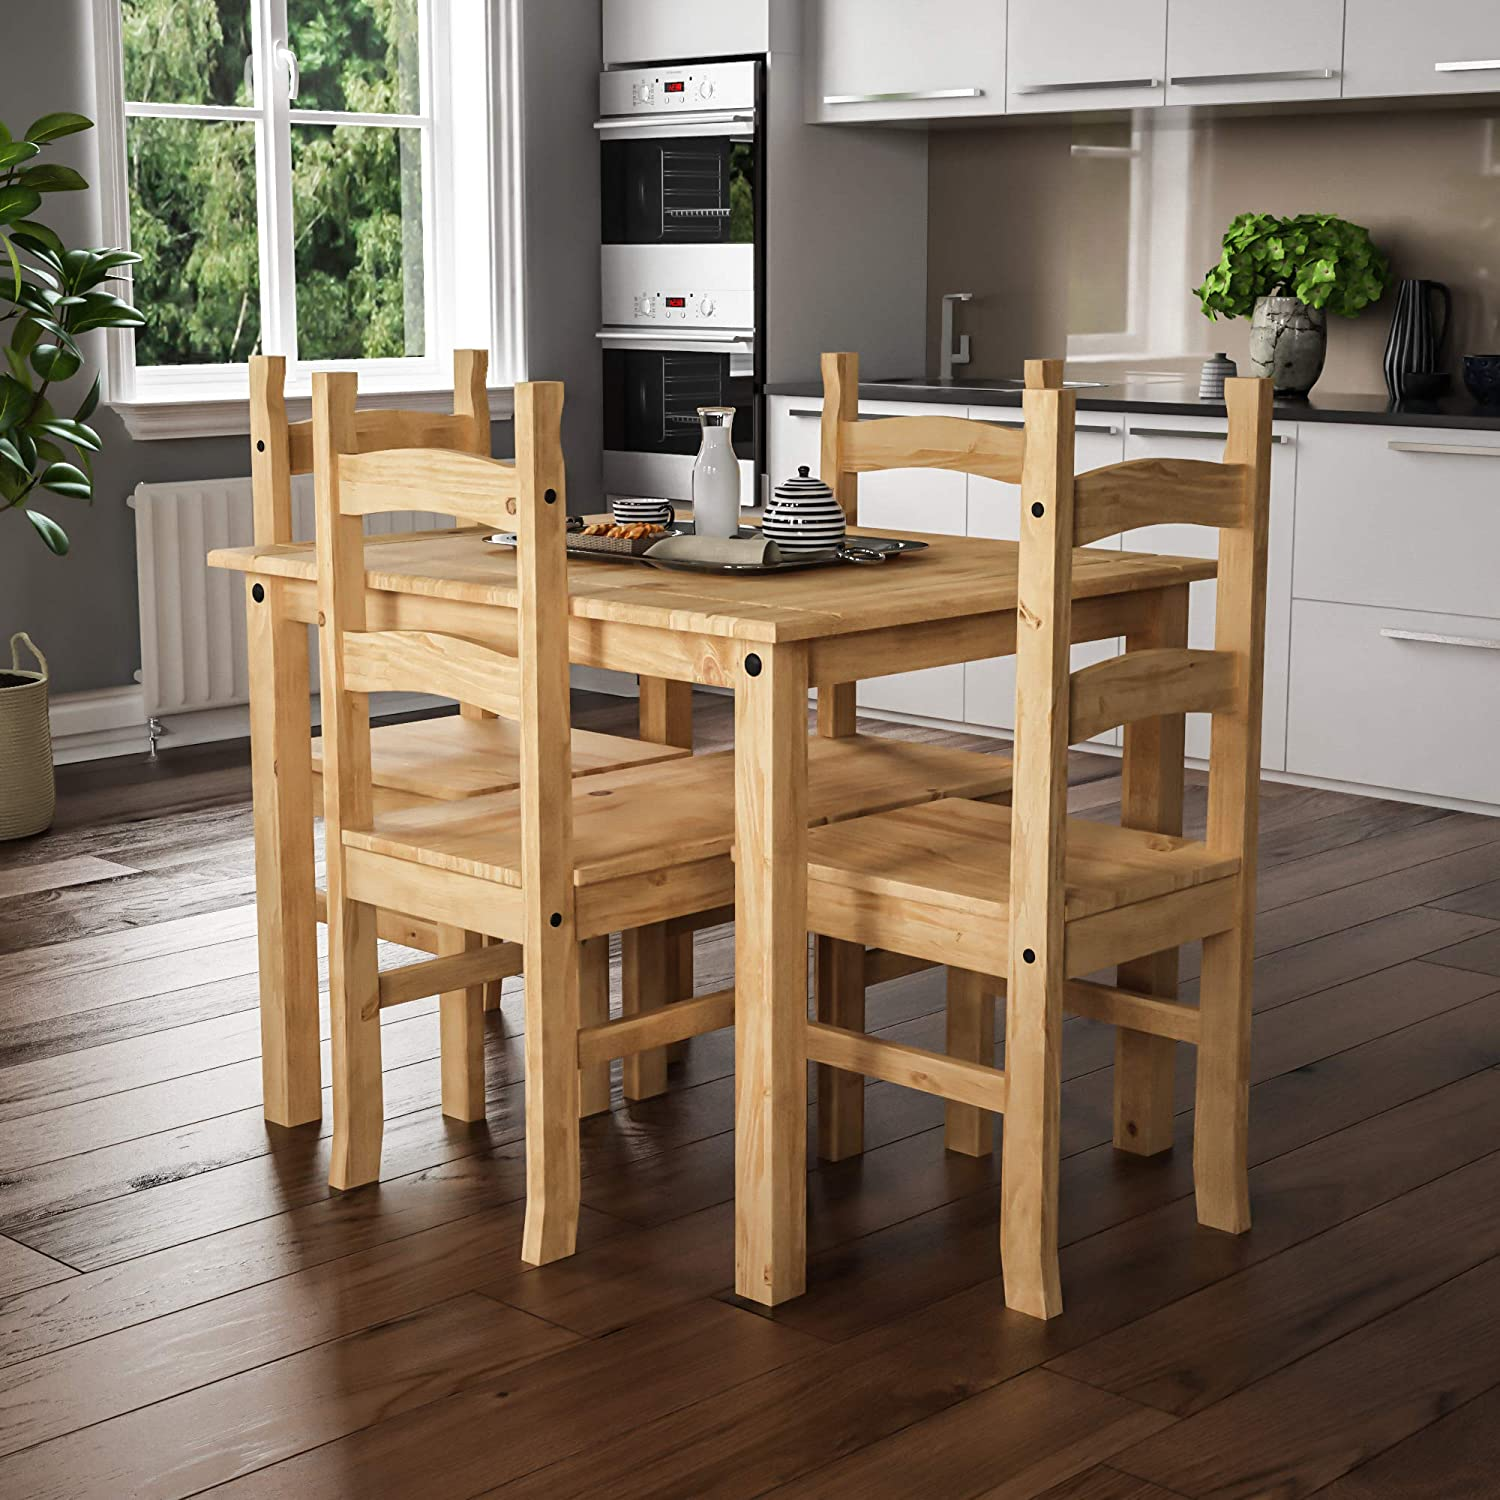 Vida Designs Corona Dining Set 9 Seater, Solid Pine Wood, Dining Table With  9 Chairs